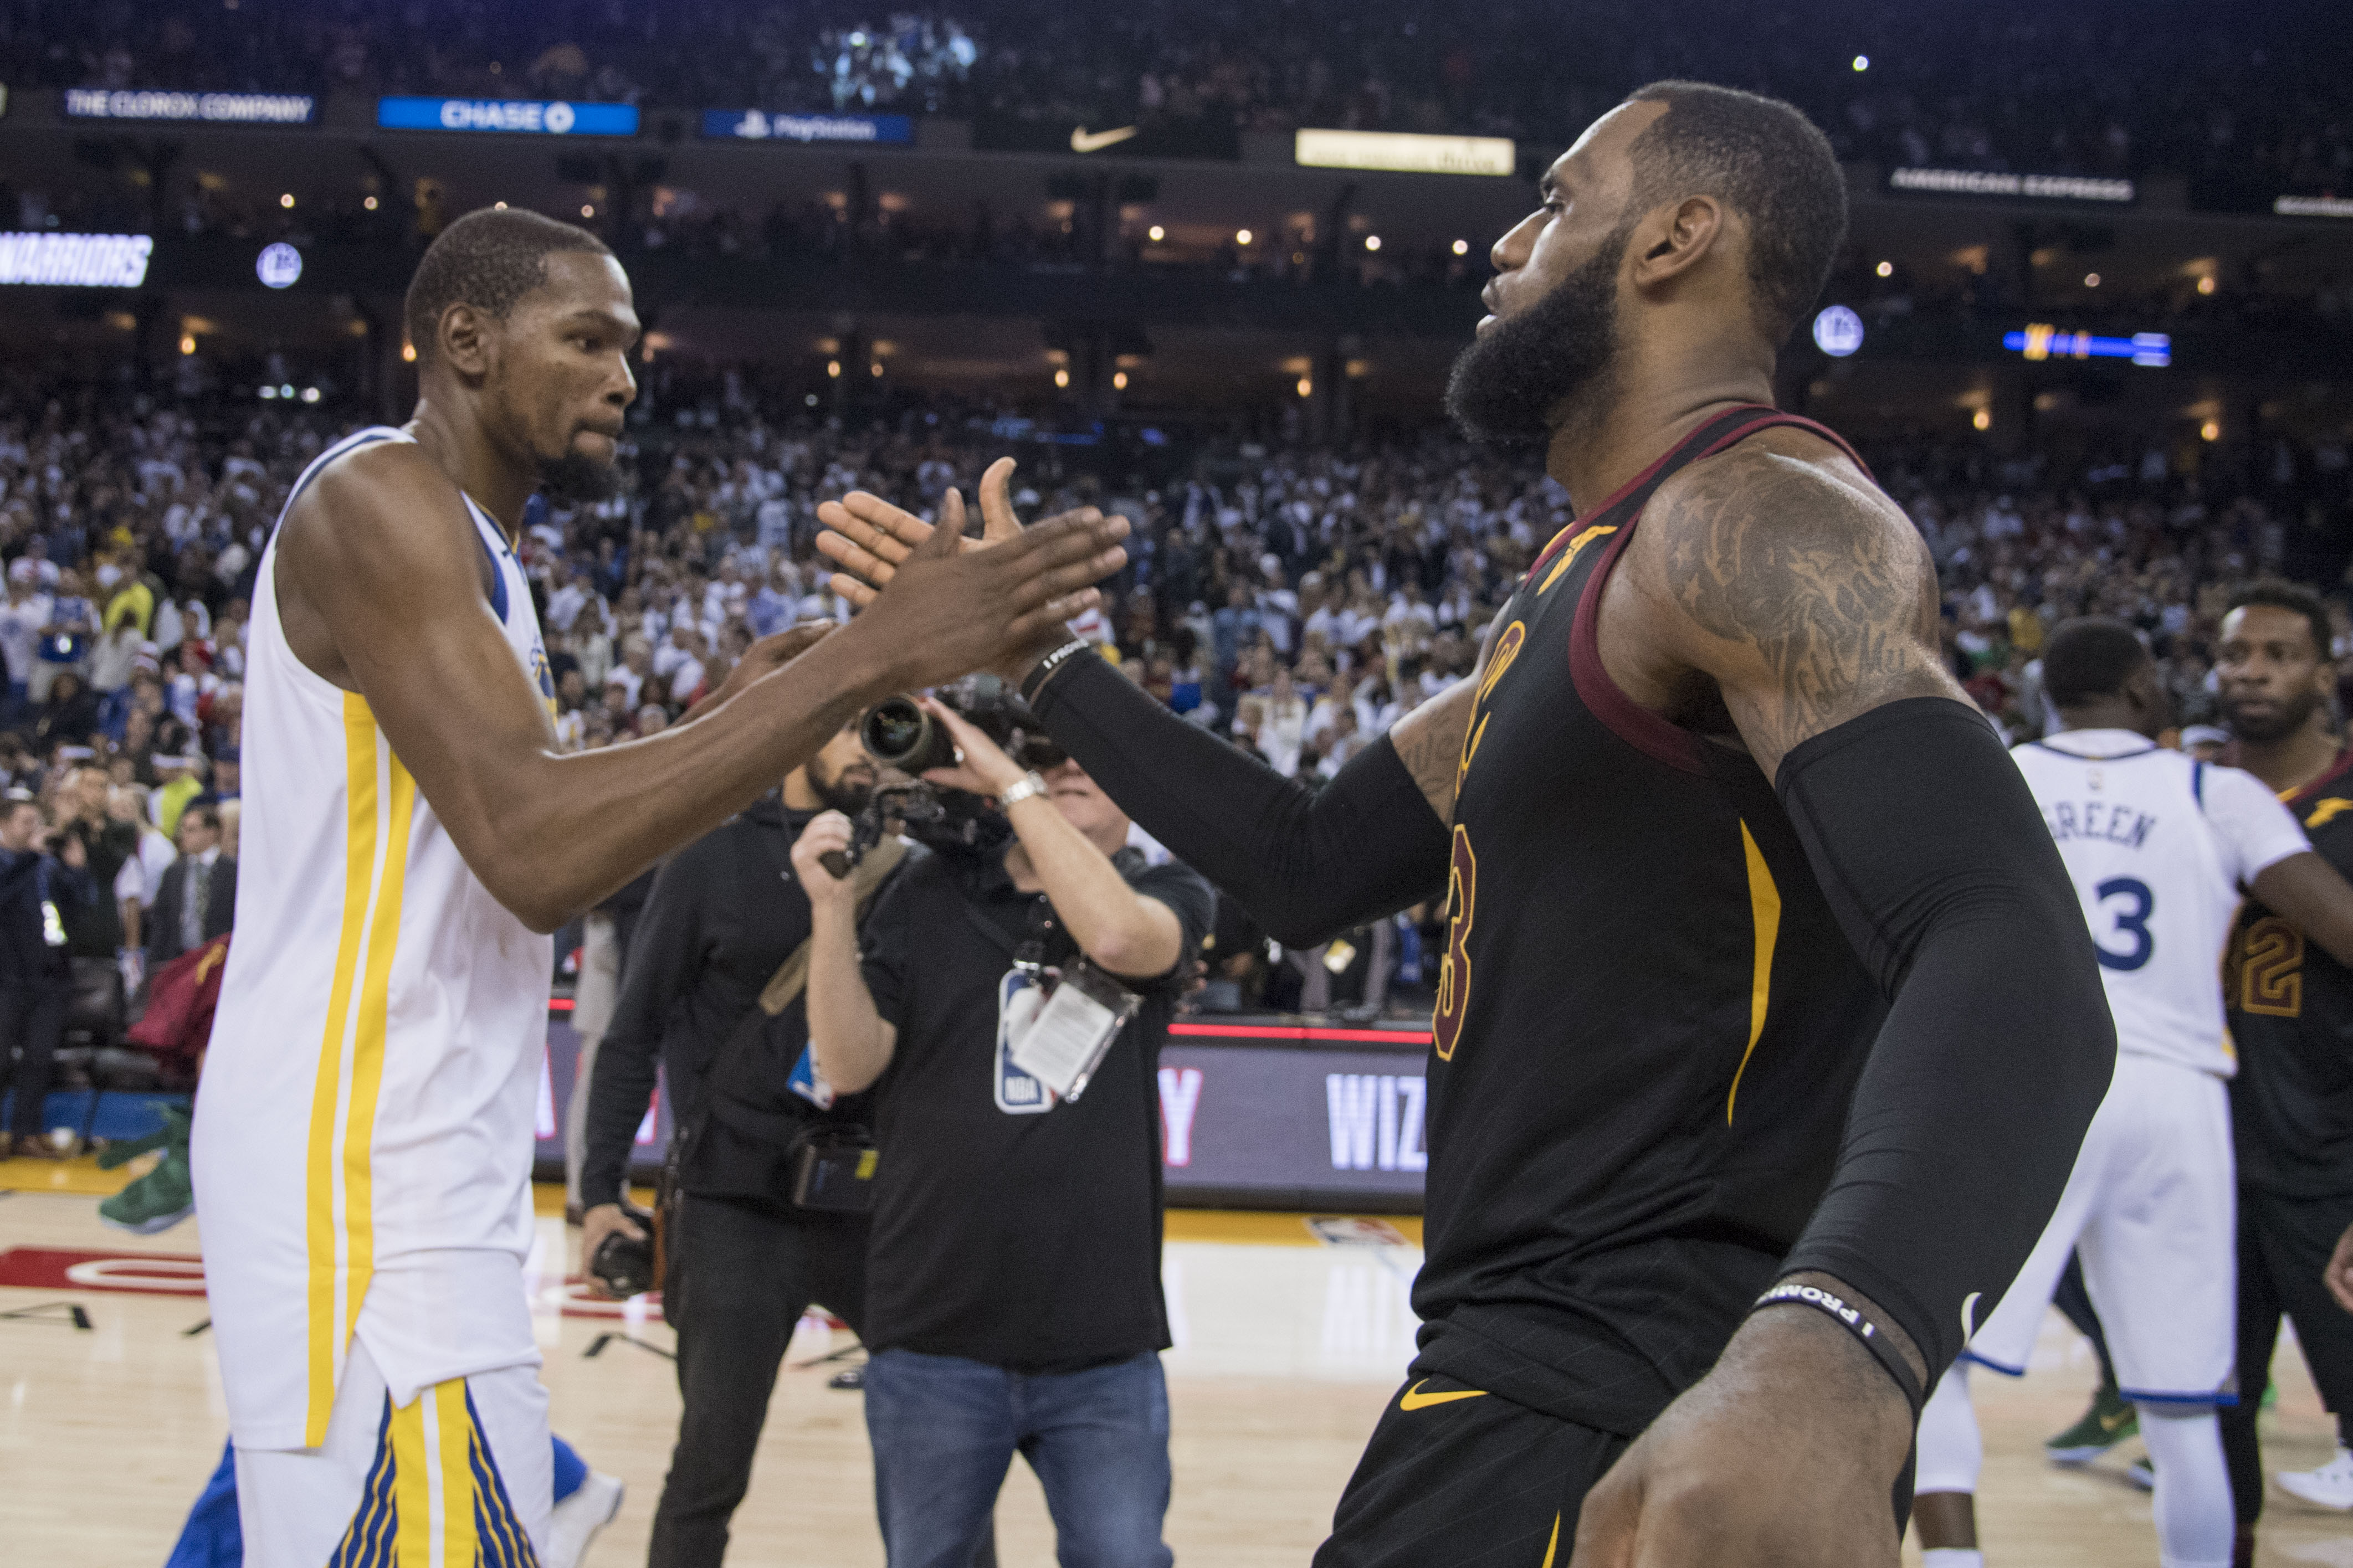 de5868775e6 Don t Let The ESPN Report About LeBron James And The Warriors Scare You